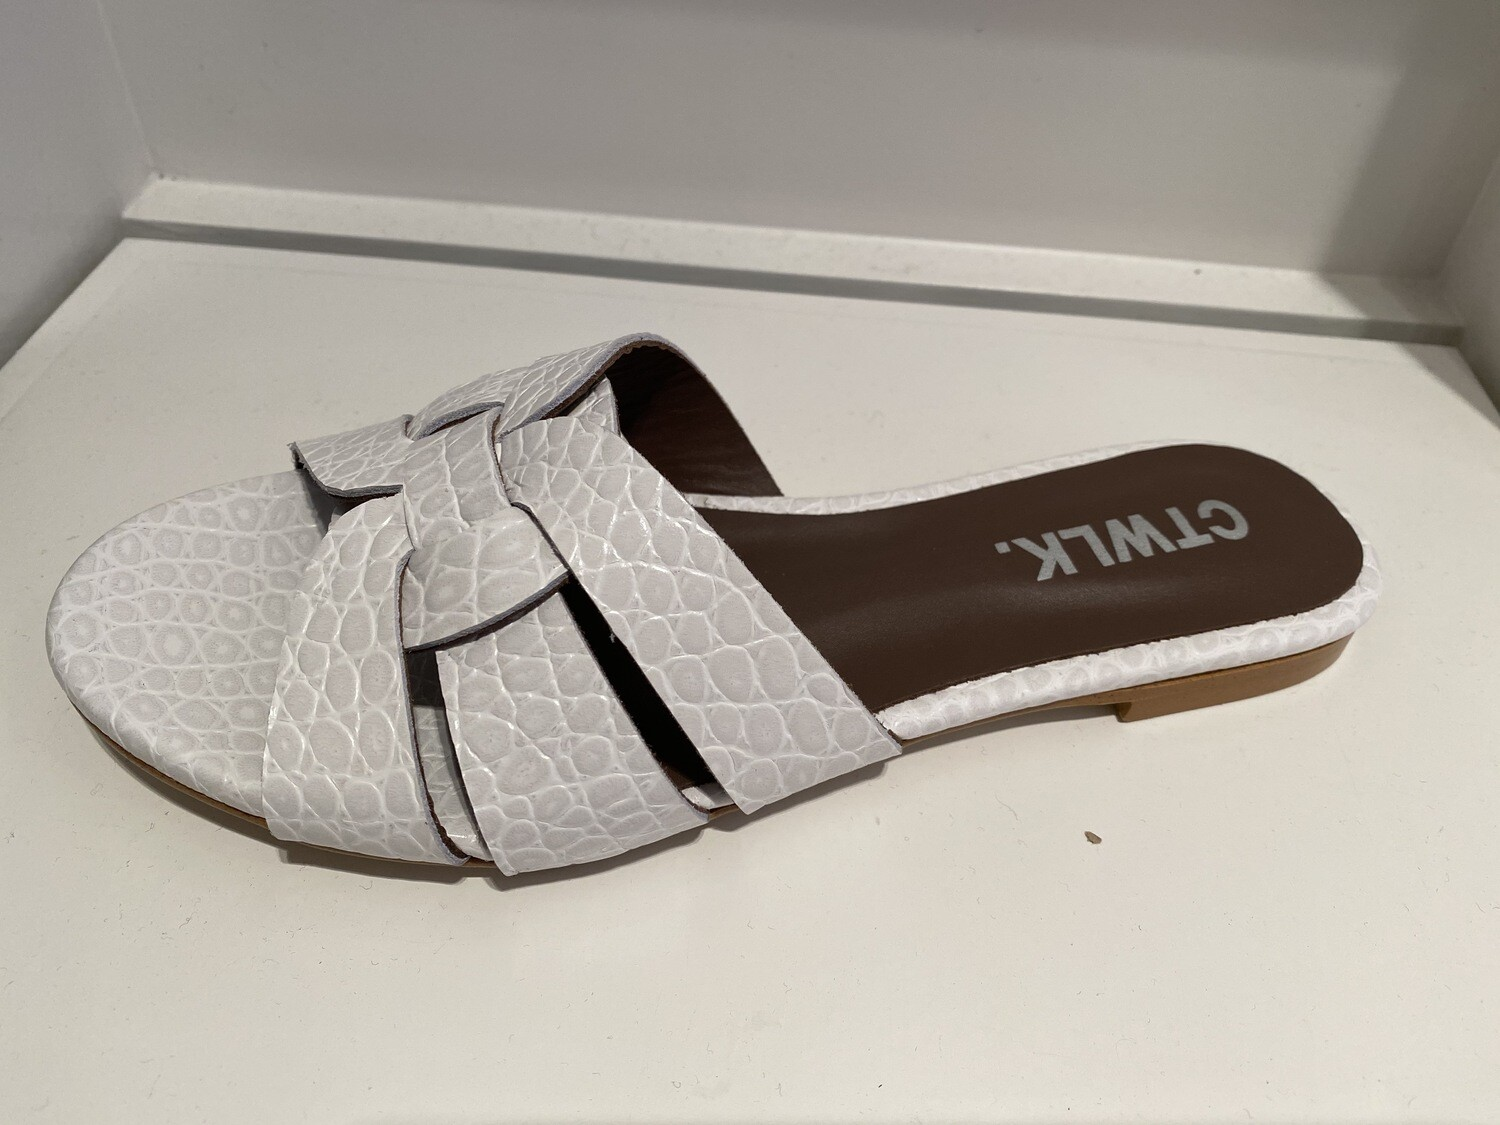 Catwalk / slipper wit coco leder